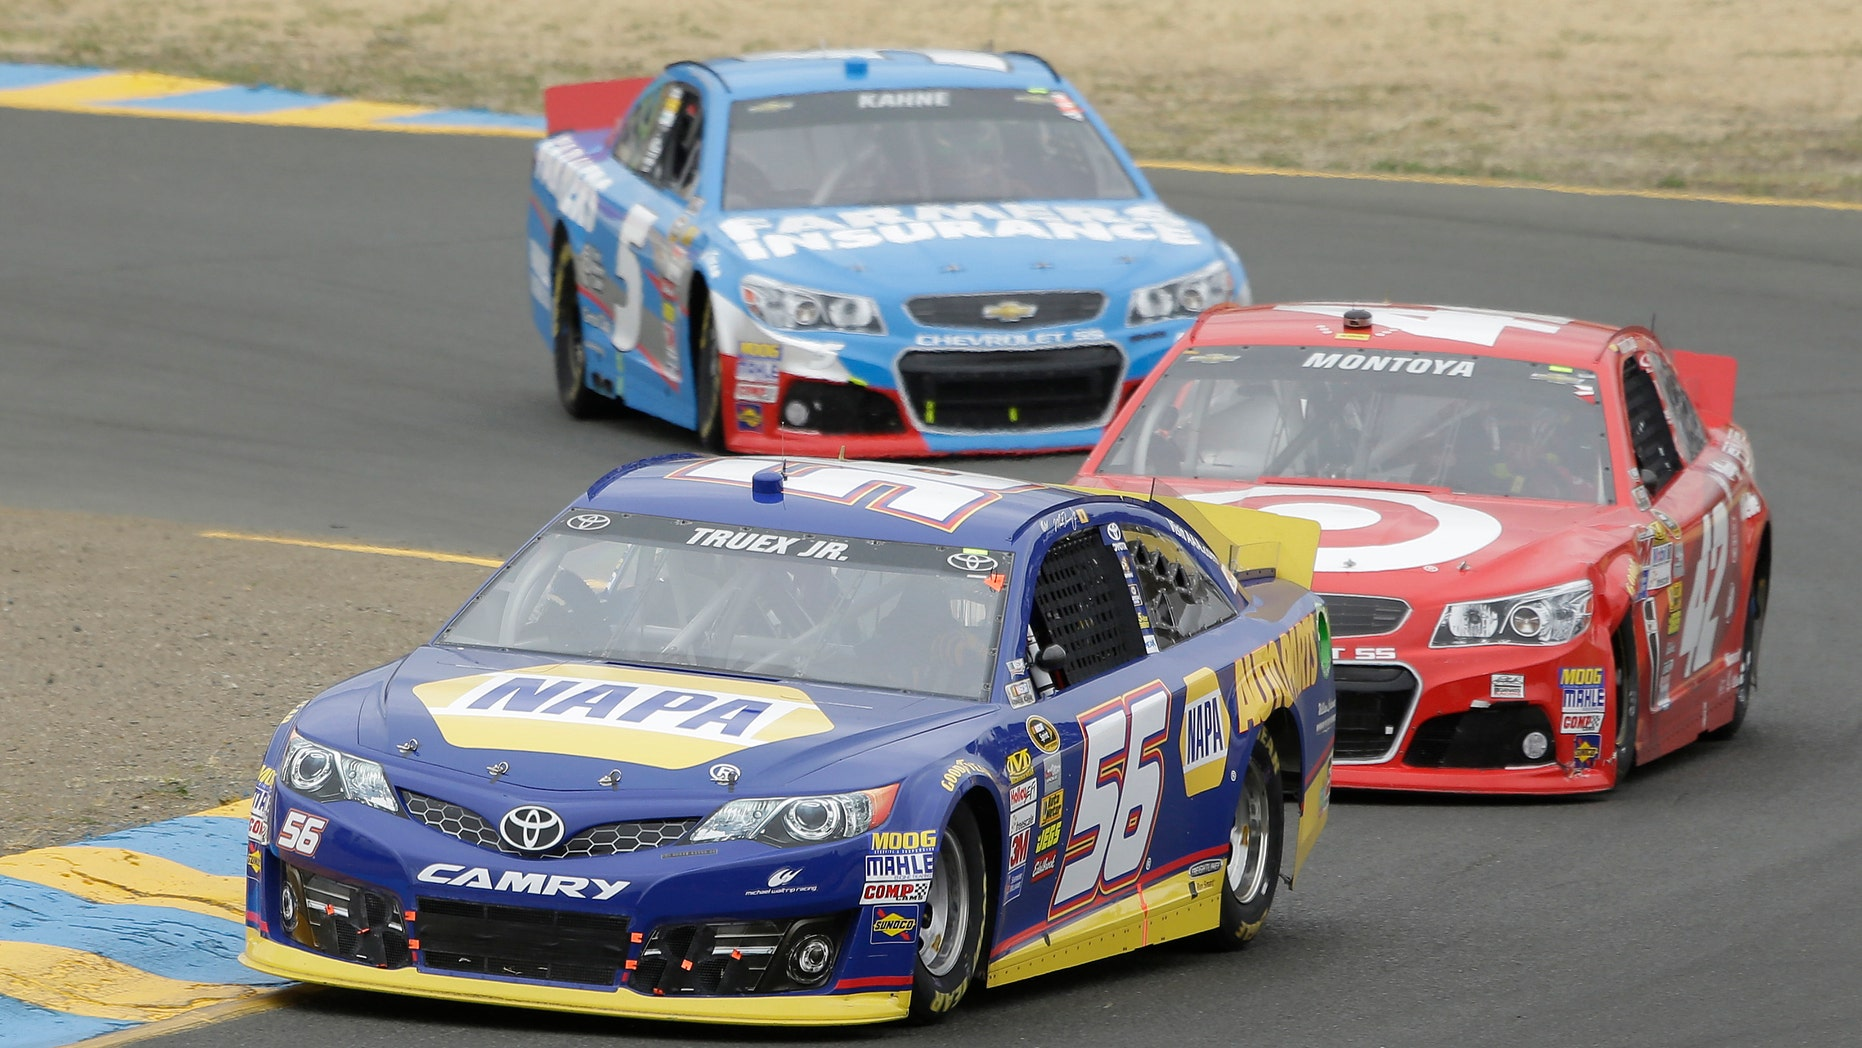 Martin Truex Jr. (56) leads Juan Pablo Montoyo, of Colombia, and Kasey Kahne through Turn 2 in a NASCAR Sprint Cup Series auto race on Sunday, June 23, 2013, in Sonoma, Calif. Truex Jr. won the race. (AP Photo/Eric Risberg)